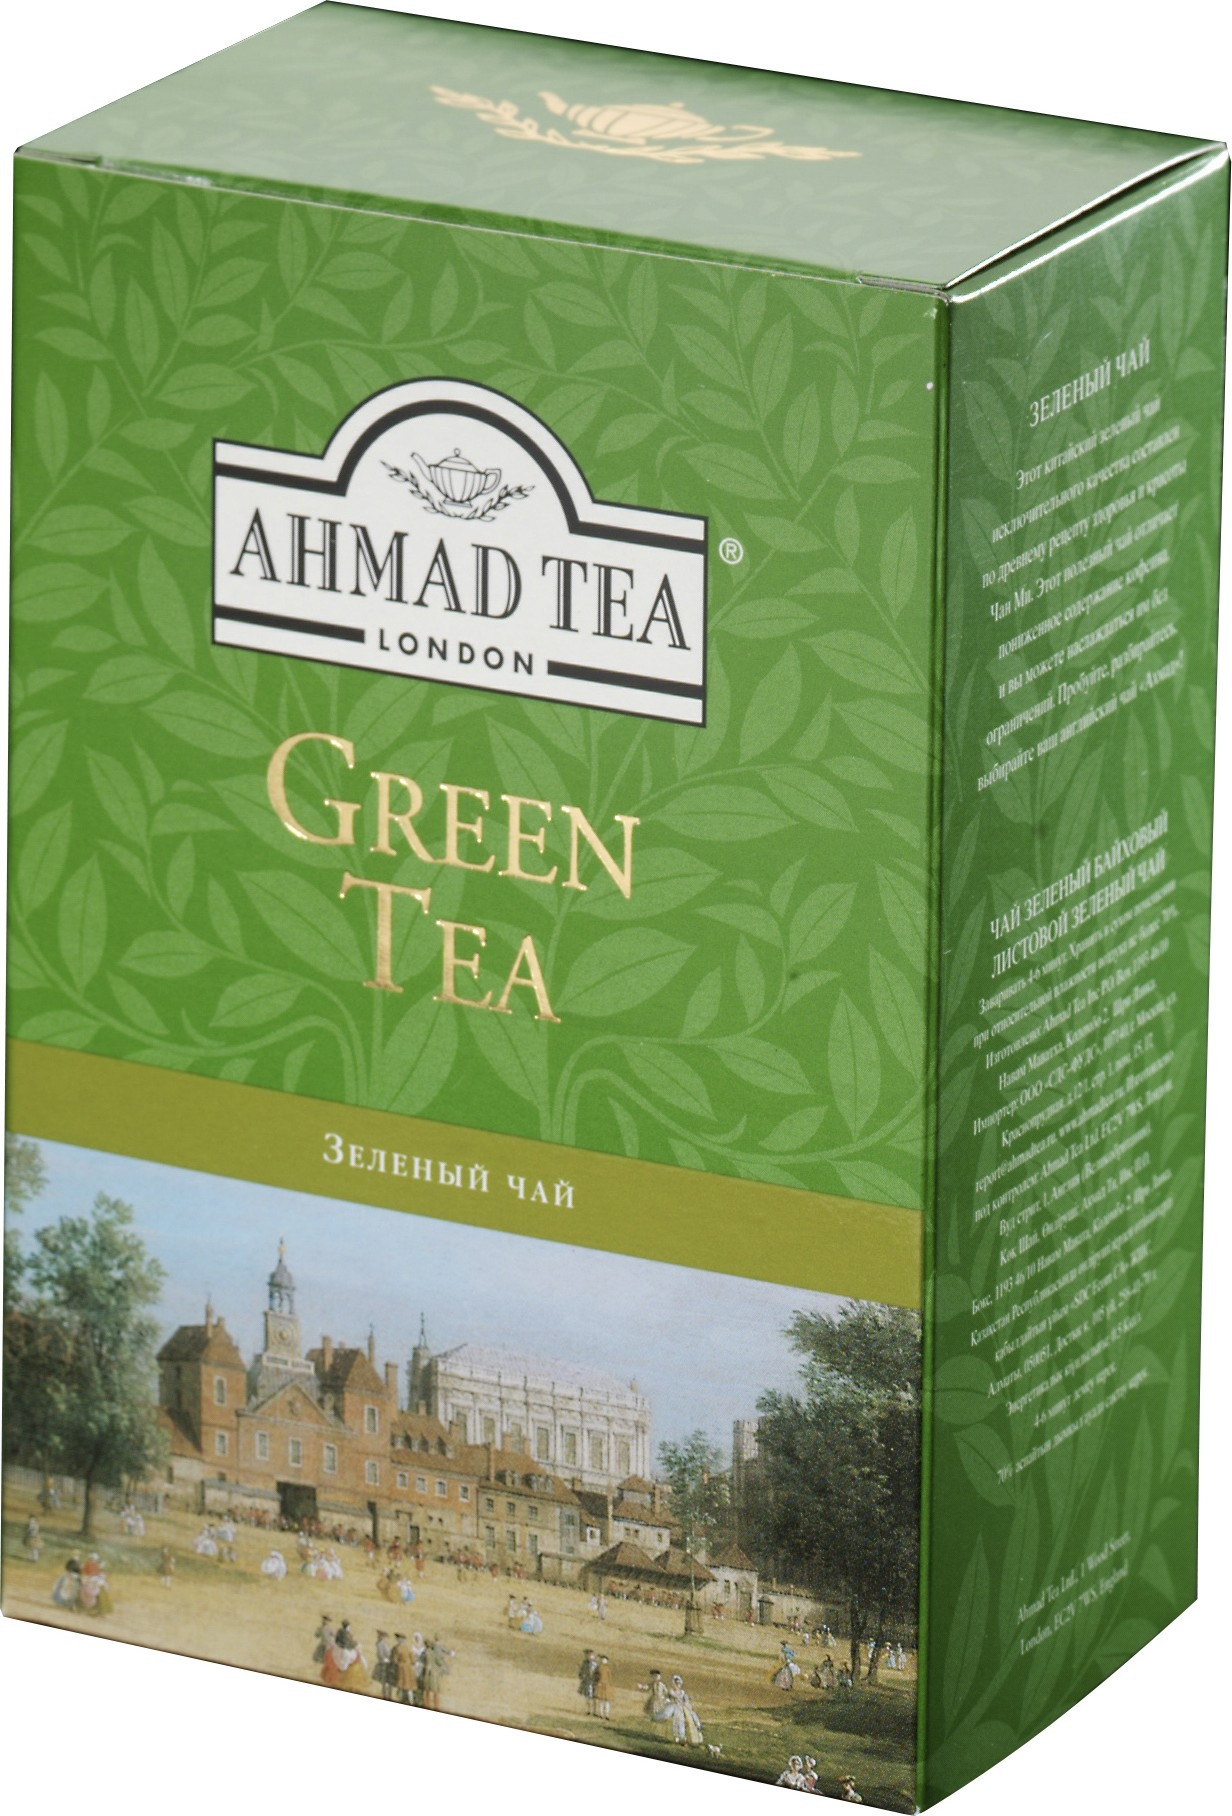 Ahmad Tea - Green Tea 500 g